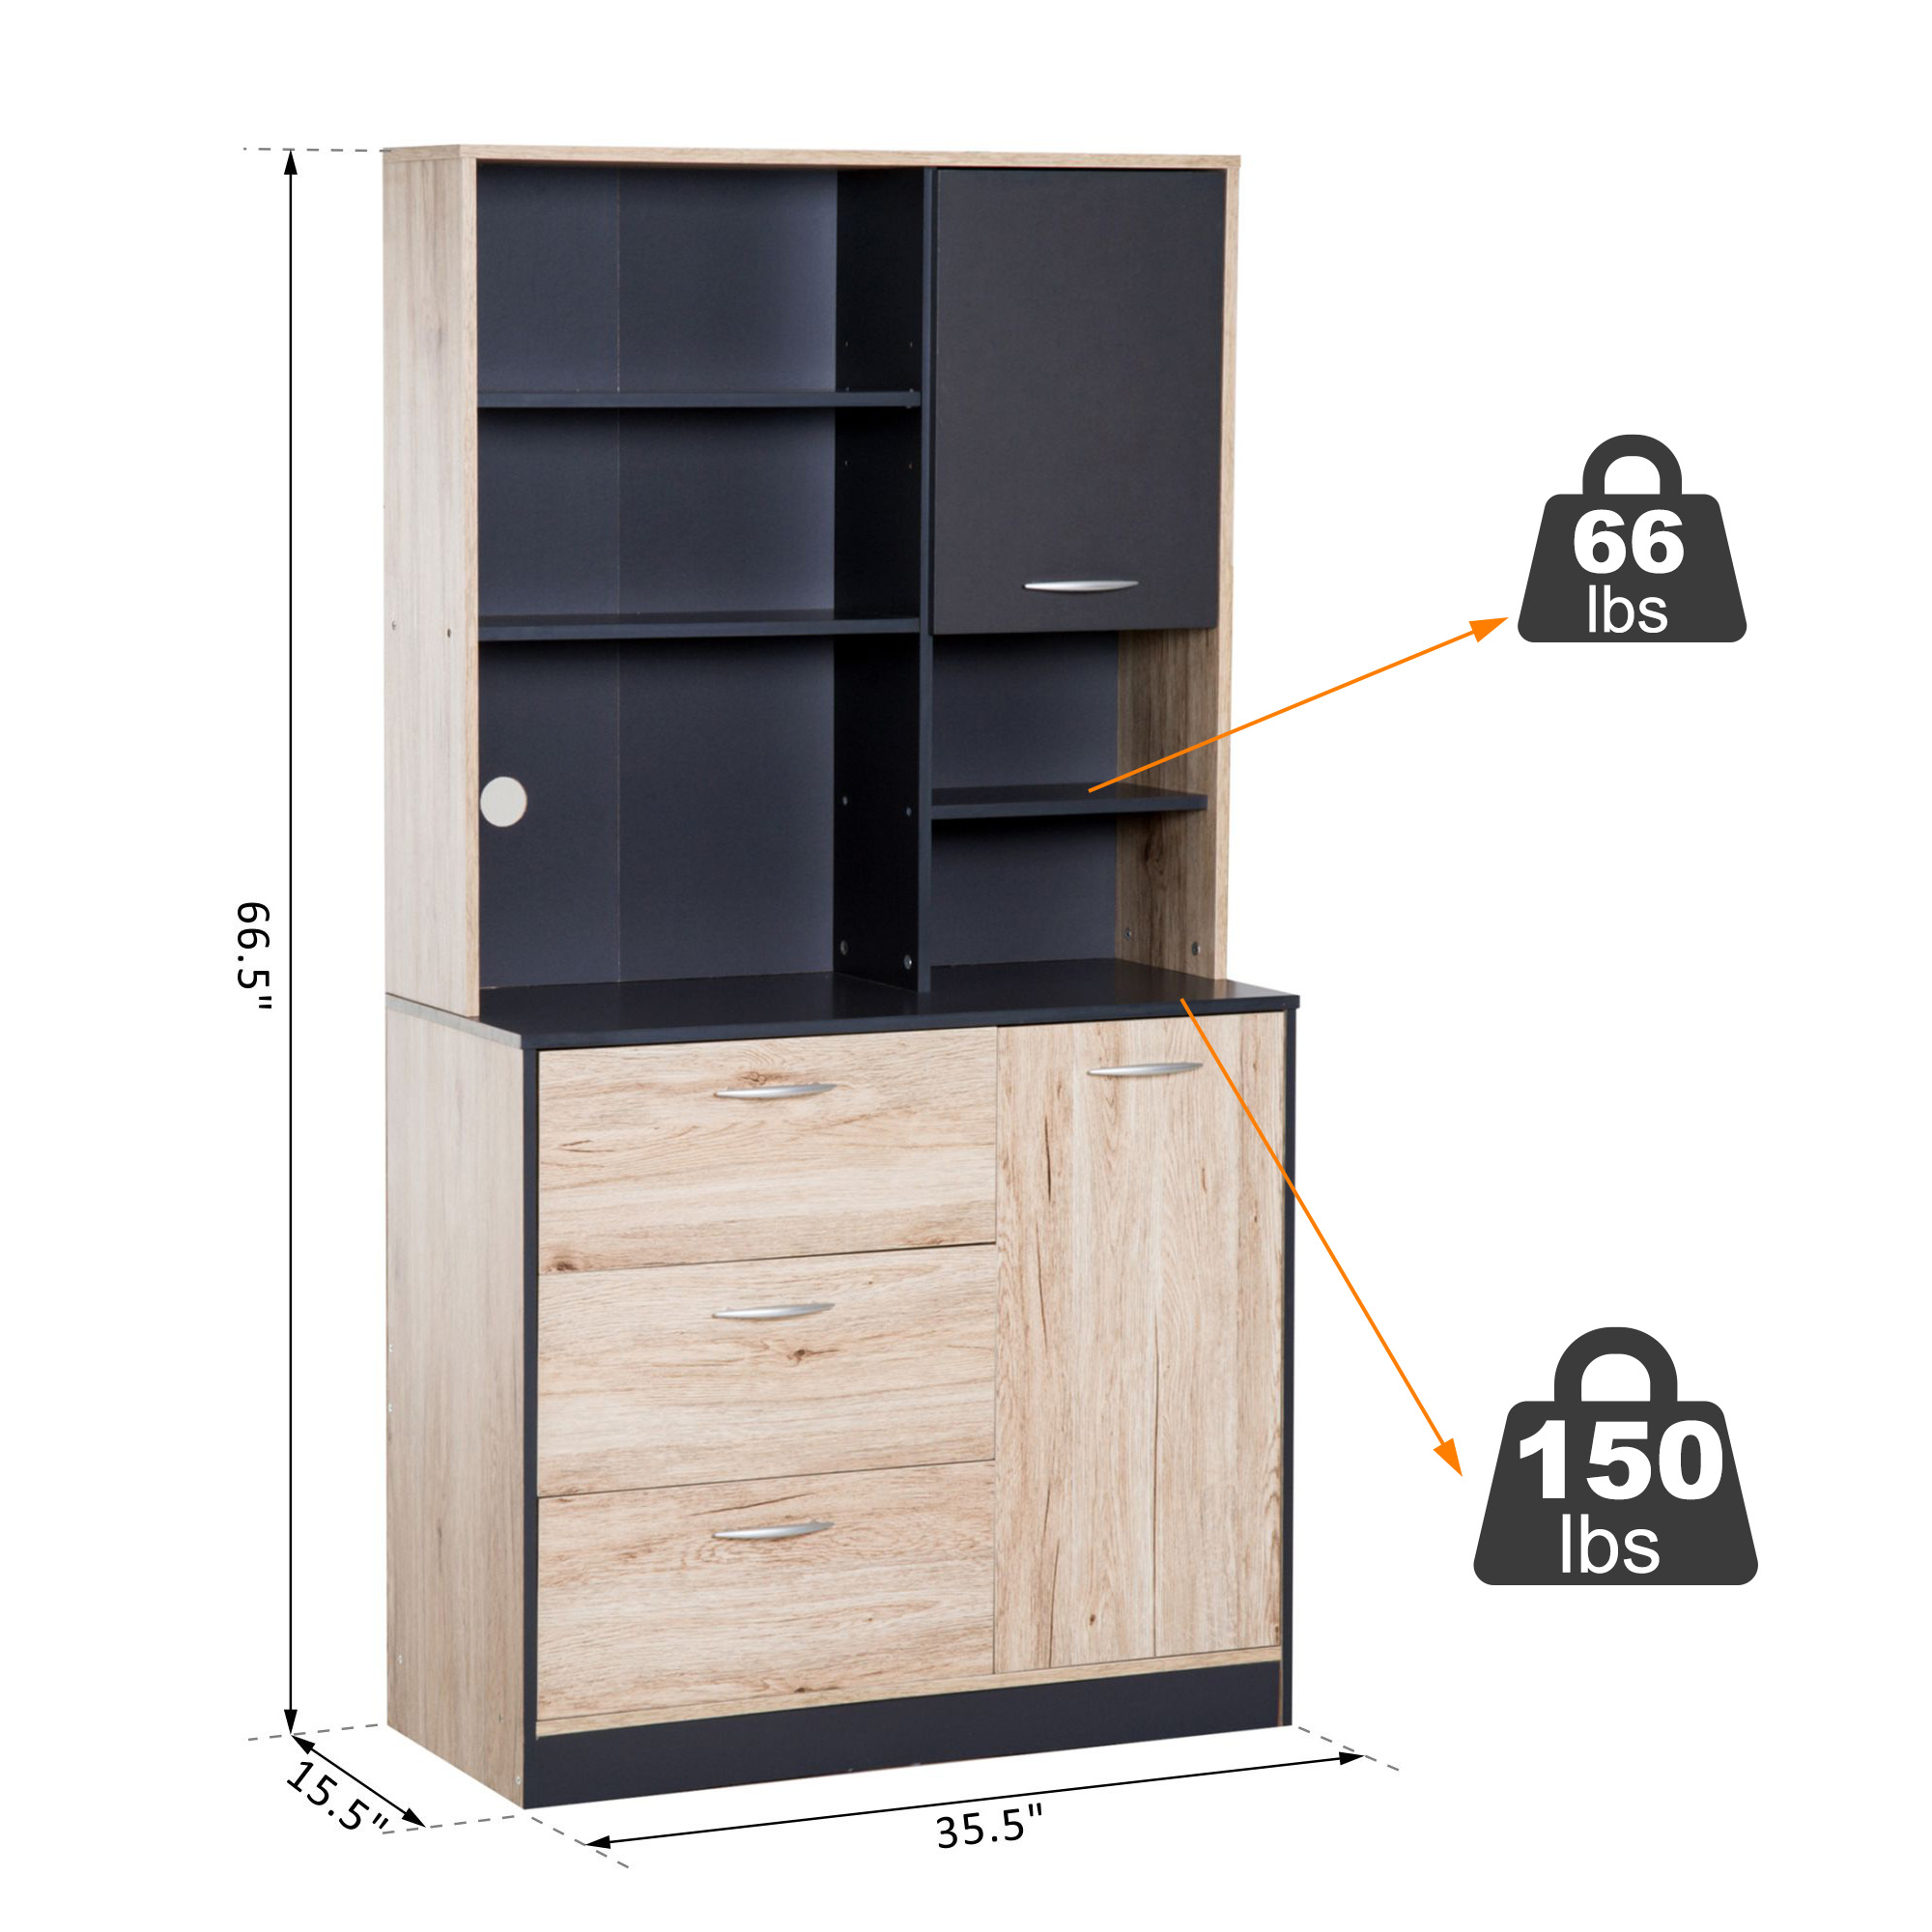 Homcom 67 Modern Freestanding Kitchen Cupboard Cabinet With Microwave Storage Hutch Natural Wood Finish Charcoal Walmart Com Walmart Com